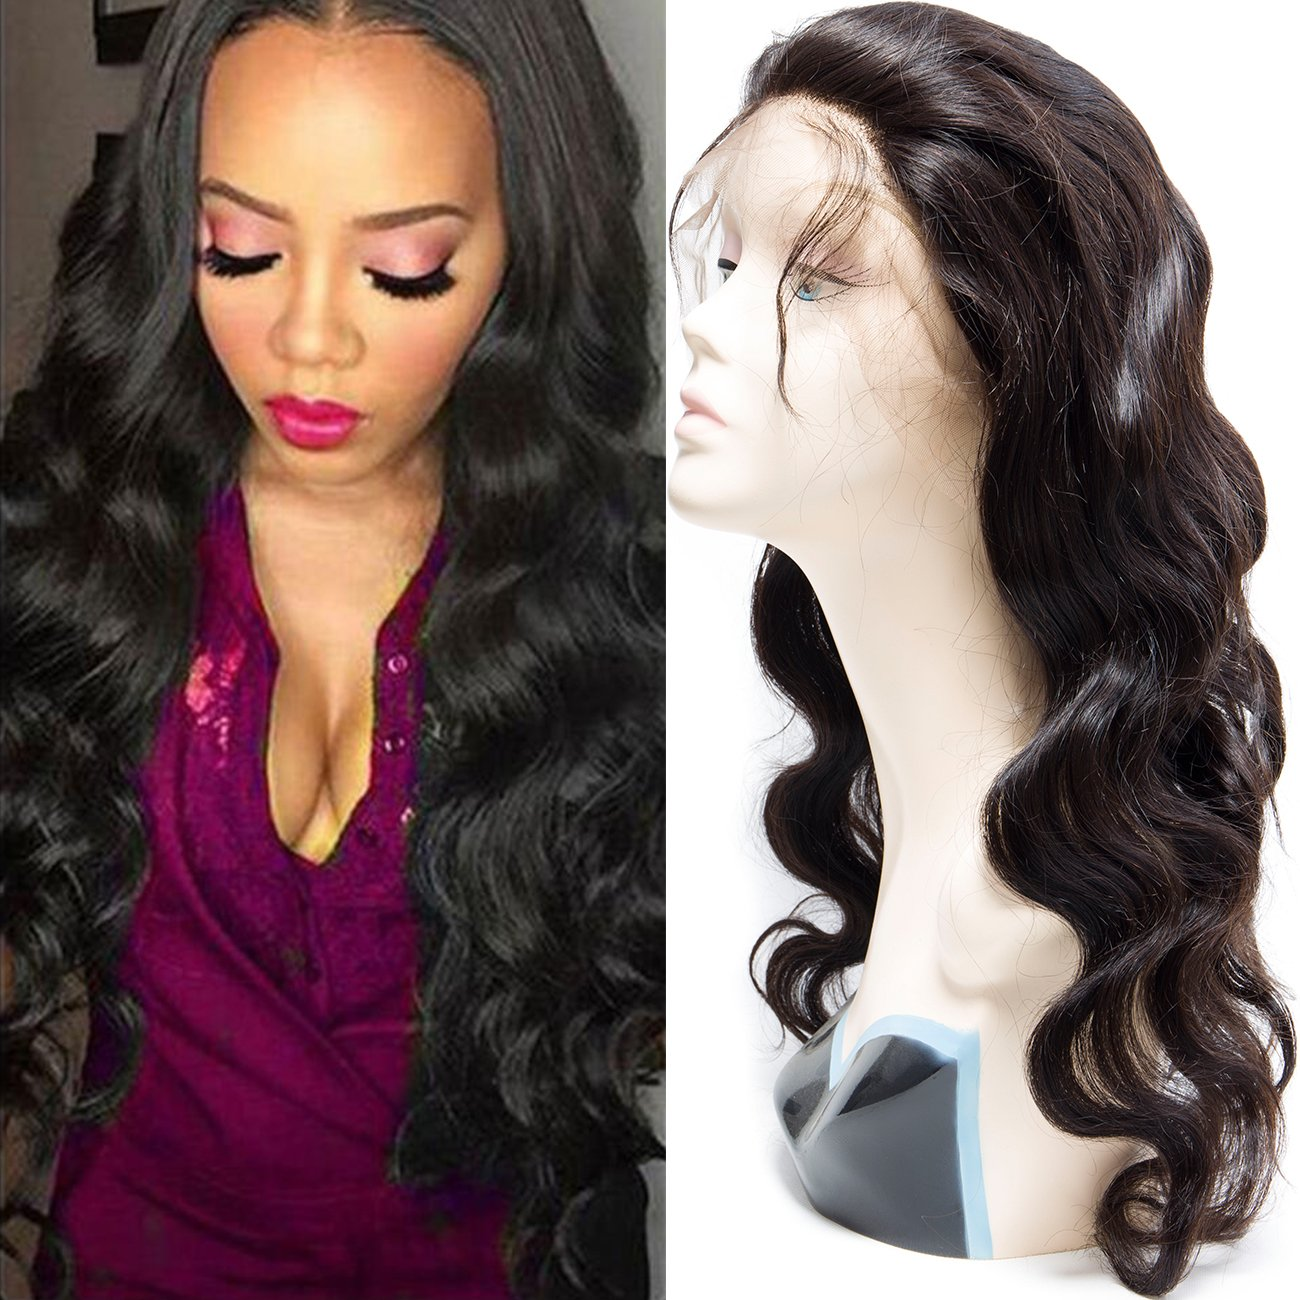 VIPbeauty Malaysian 360 Lace Frontal Wigs Human Virgin Hair with Baby Hair Natural Black 130% Density Pre Plucked Body Wave Wighs for Black Women 22inches